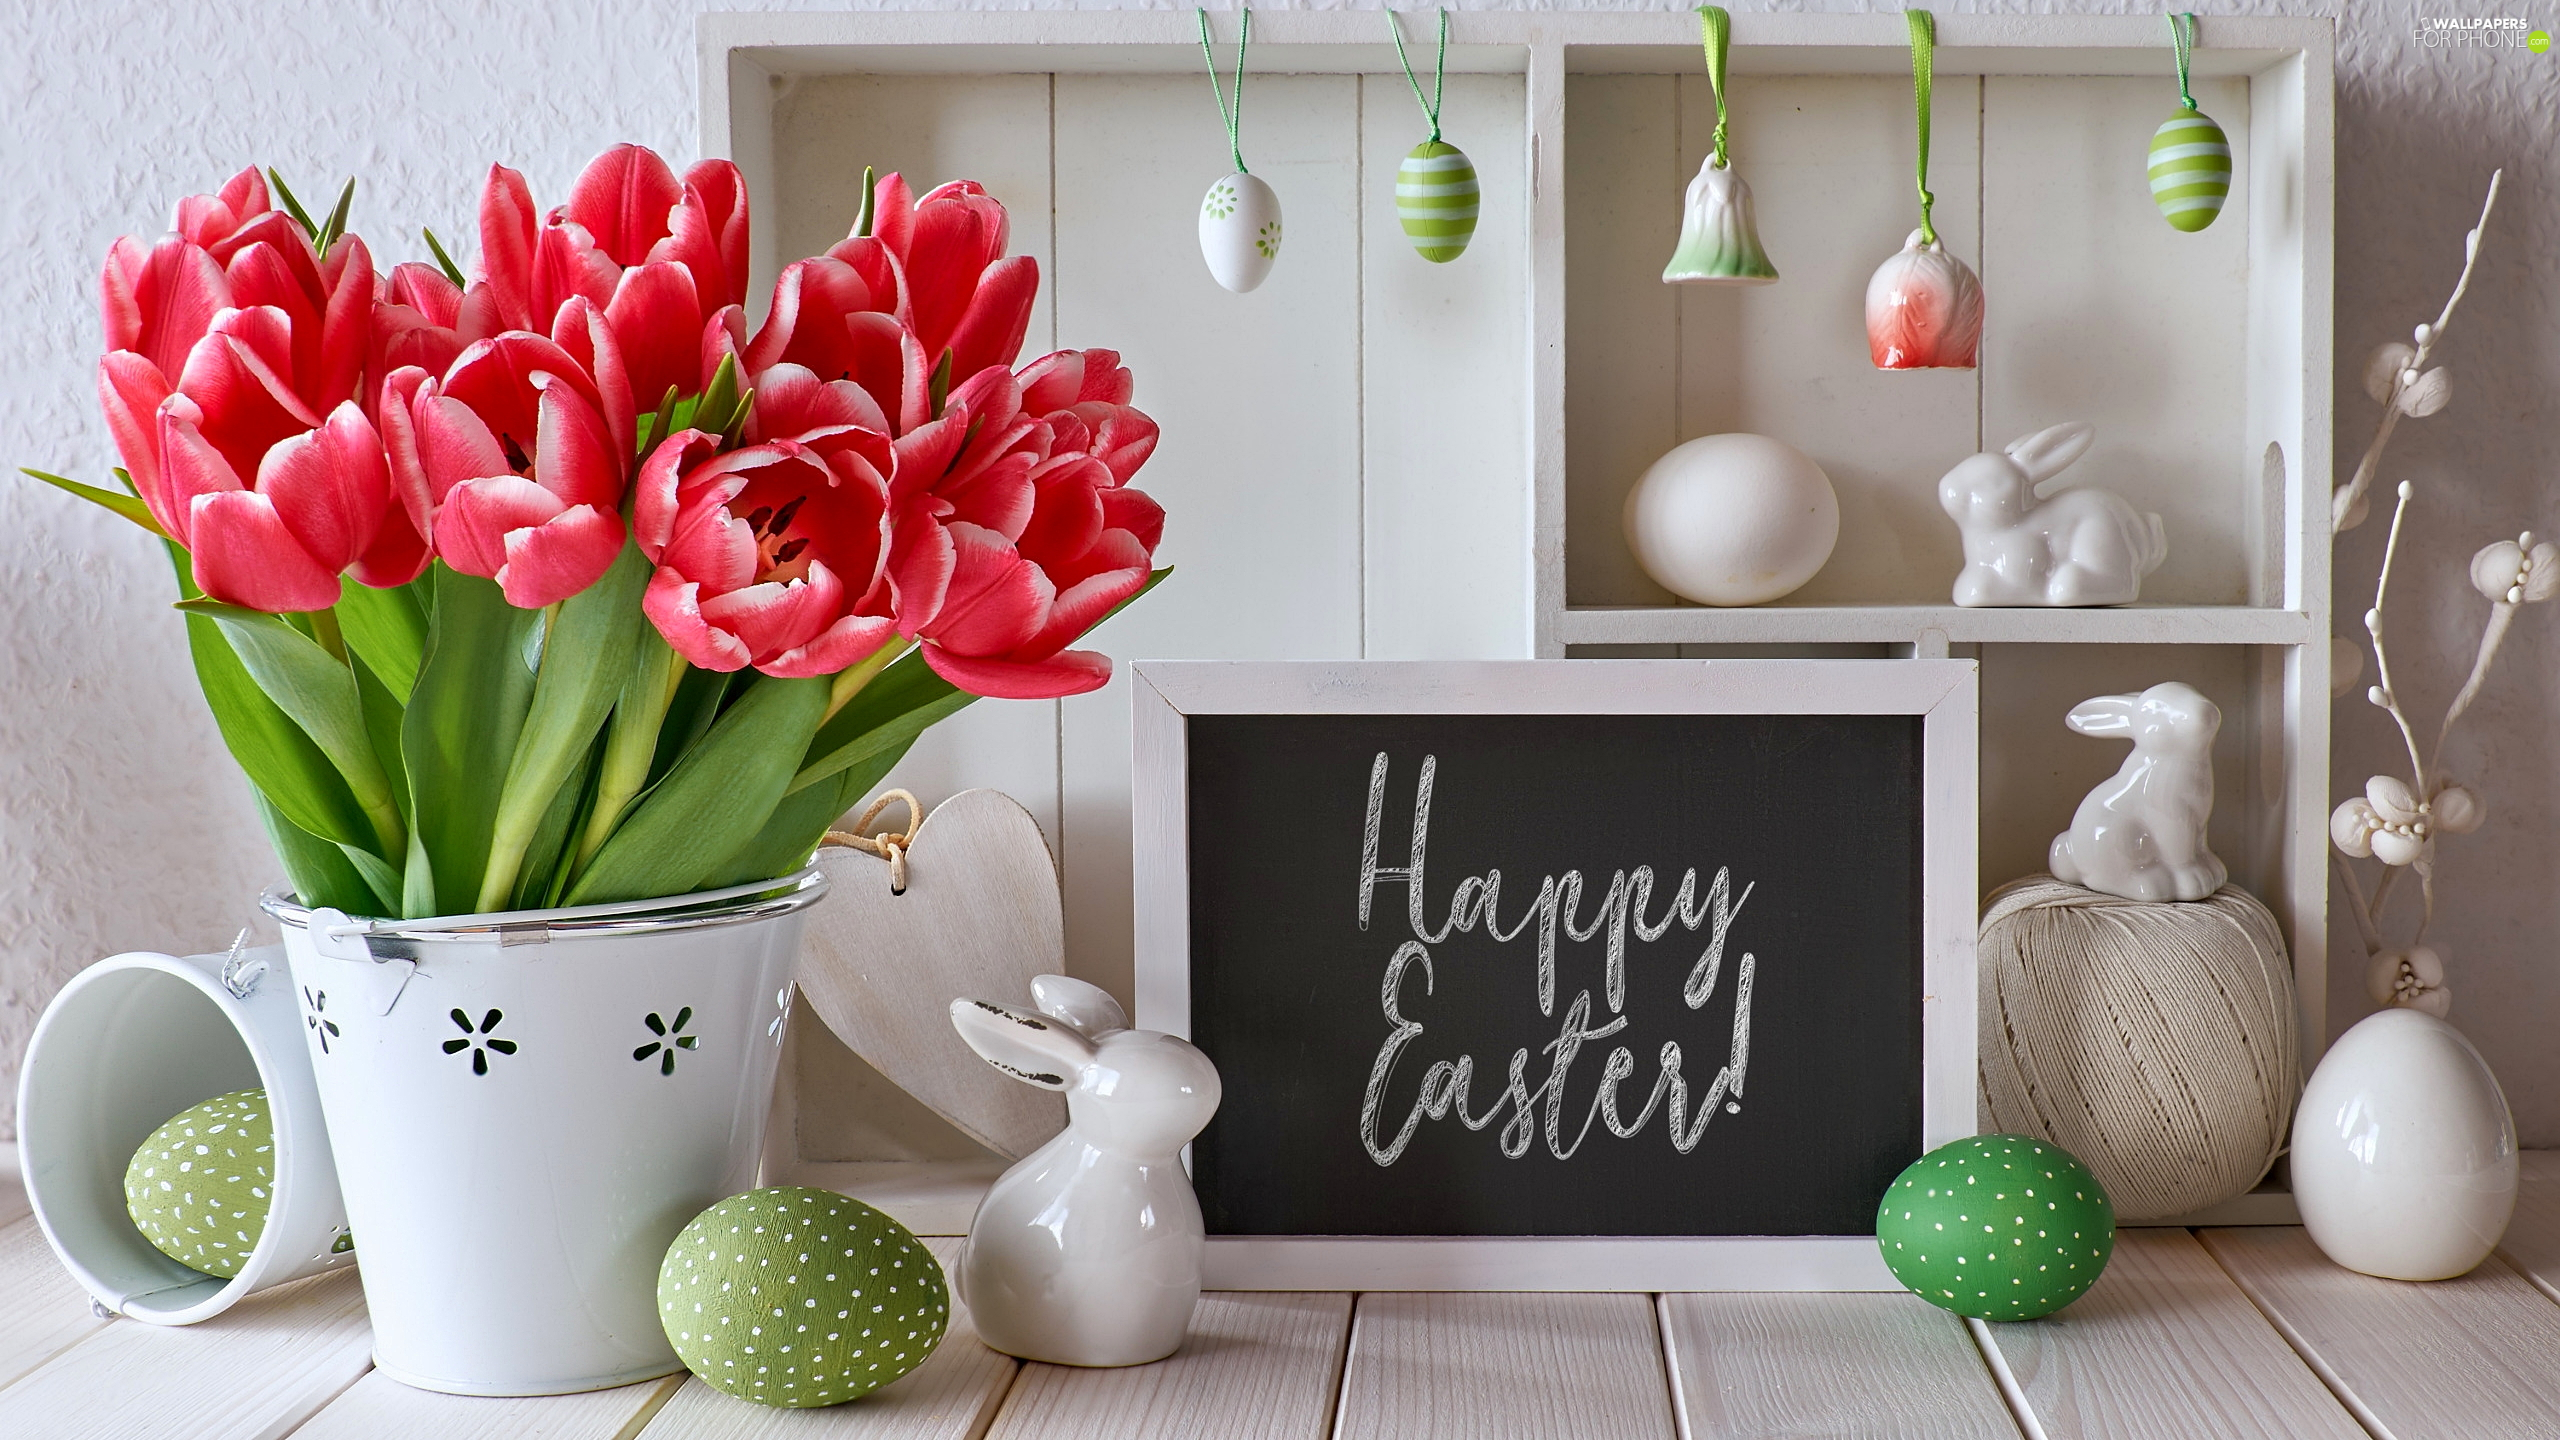 Happy Easter, Vase, rabbits, composition, table, Tulips, eggs, Easter, pendants, text